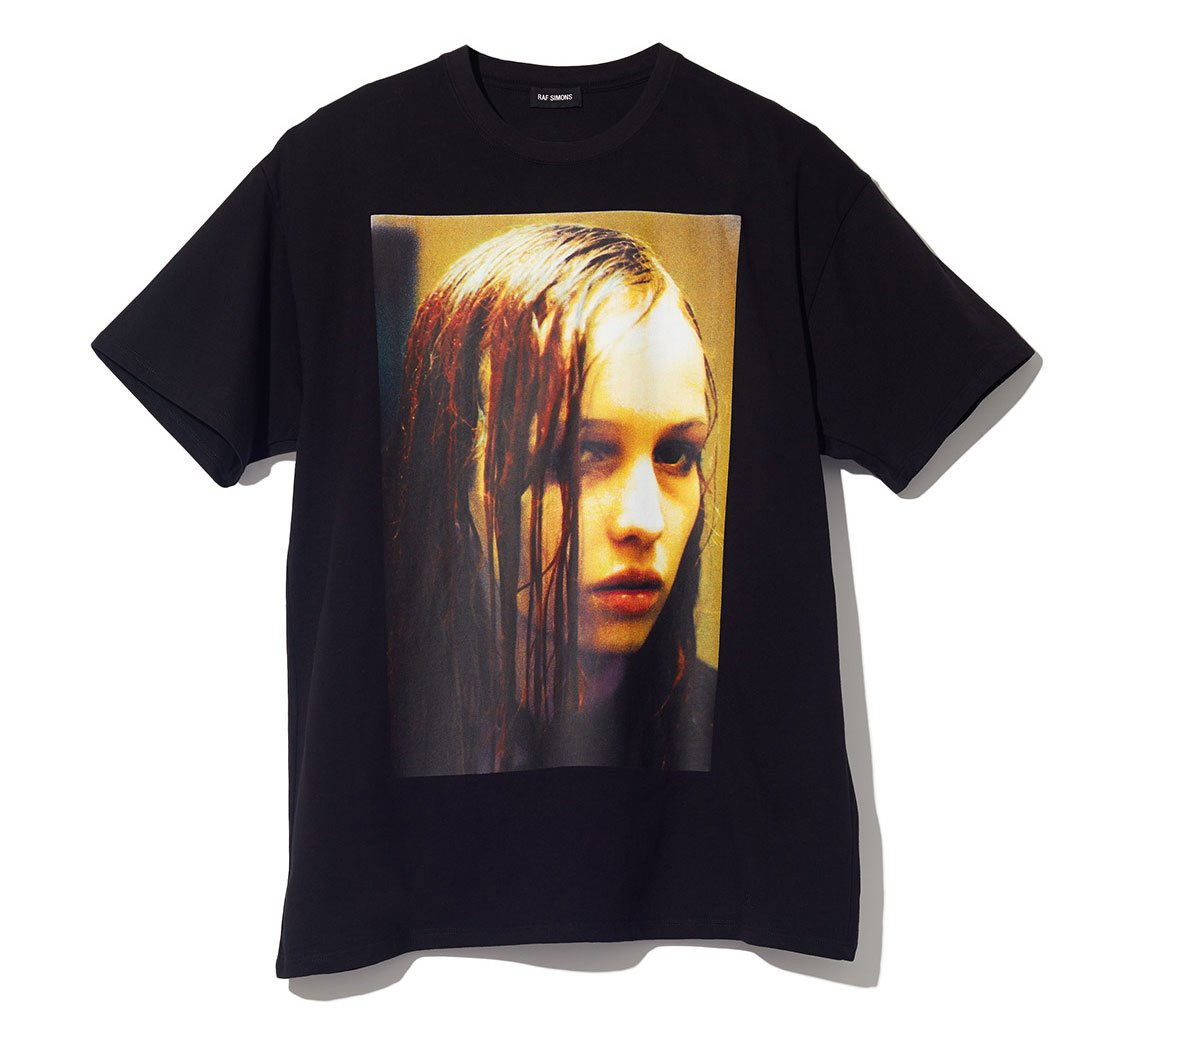 Raf Simons Drops Collaborative AW18 Collection with 'Christiane F. wir Kinder vom Bahnhof Zoo'